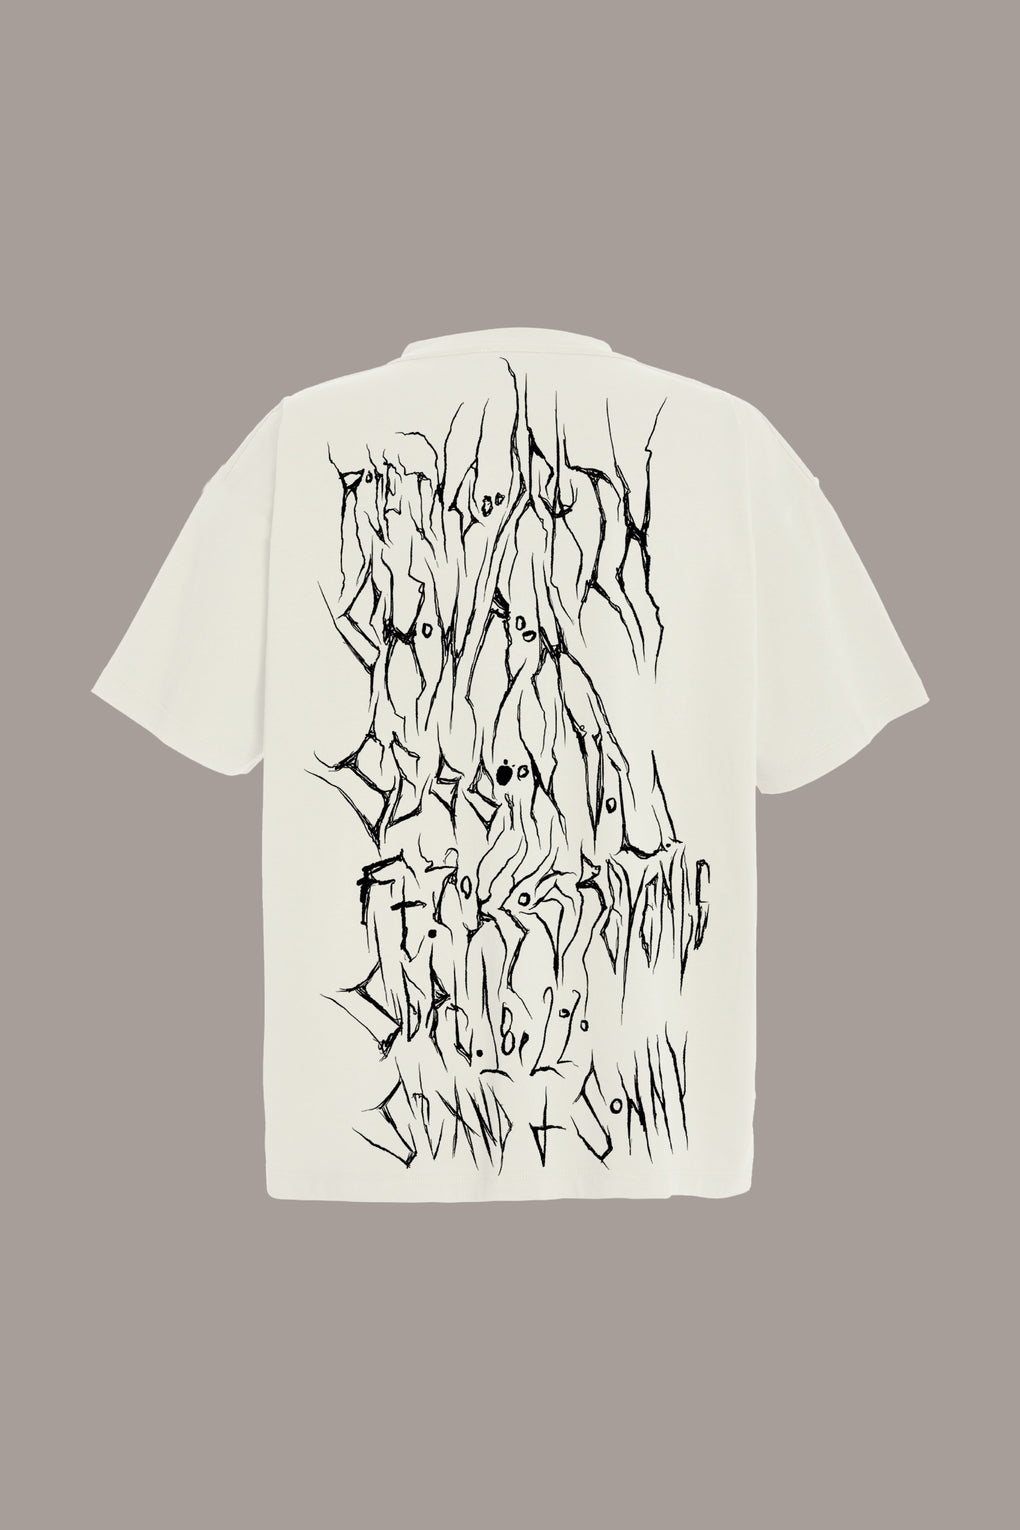 SPLIT PERSONALITY TEE + LIVE-STREAM PLAYBACK